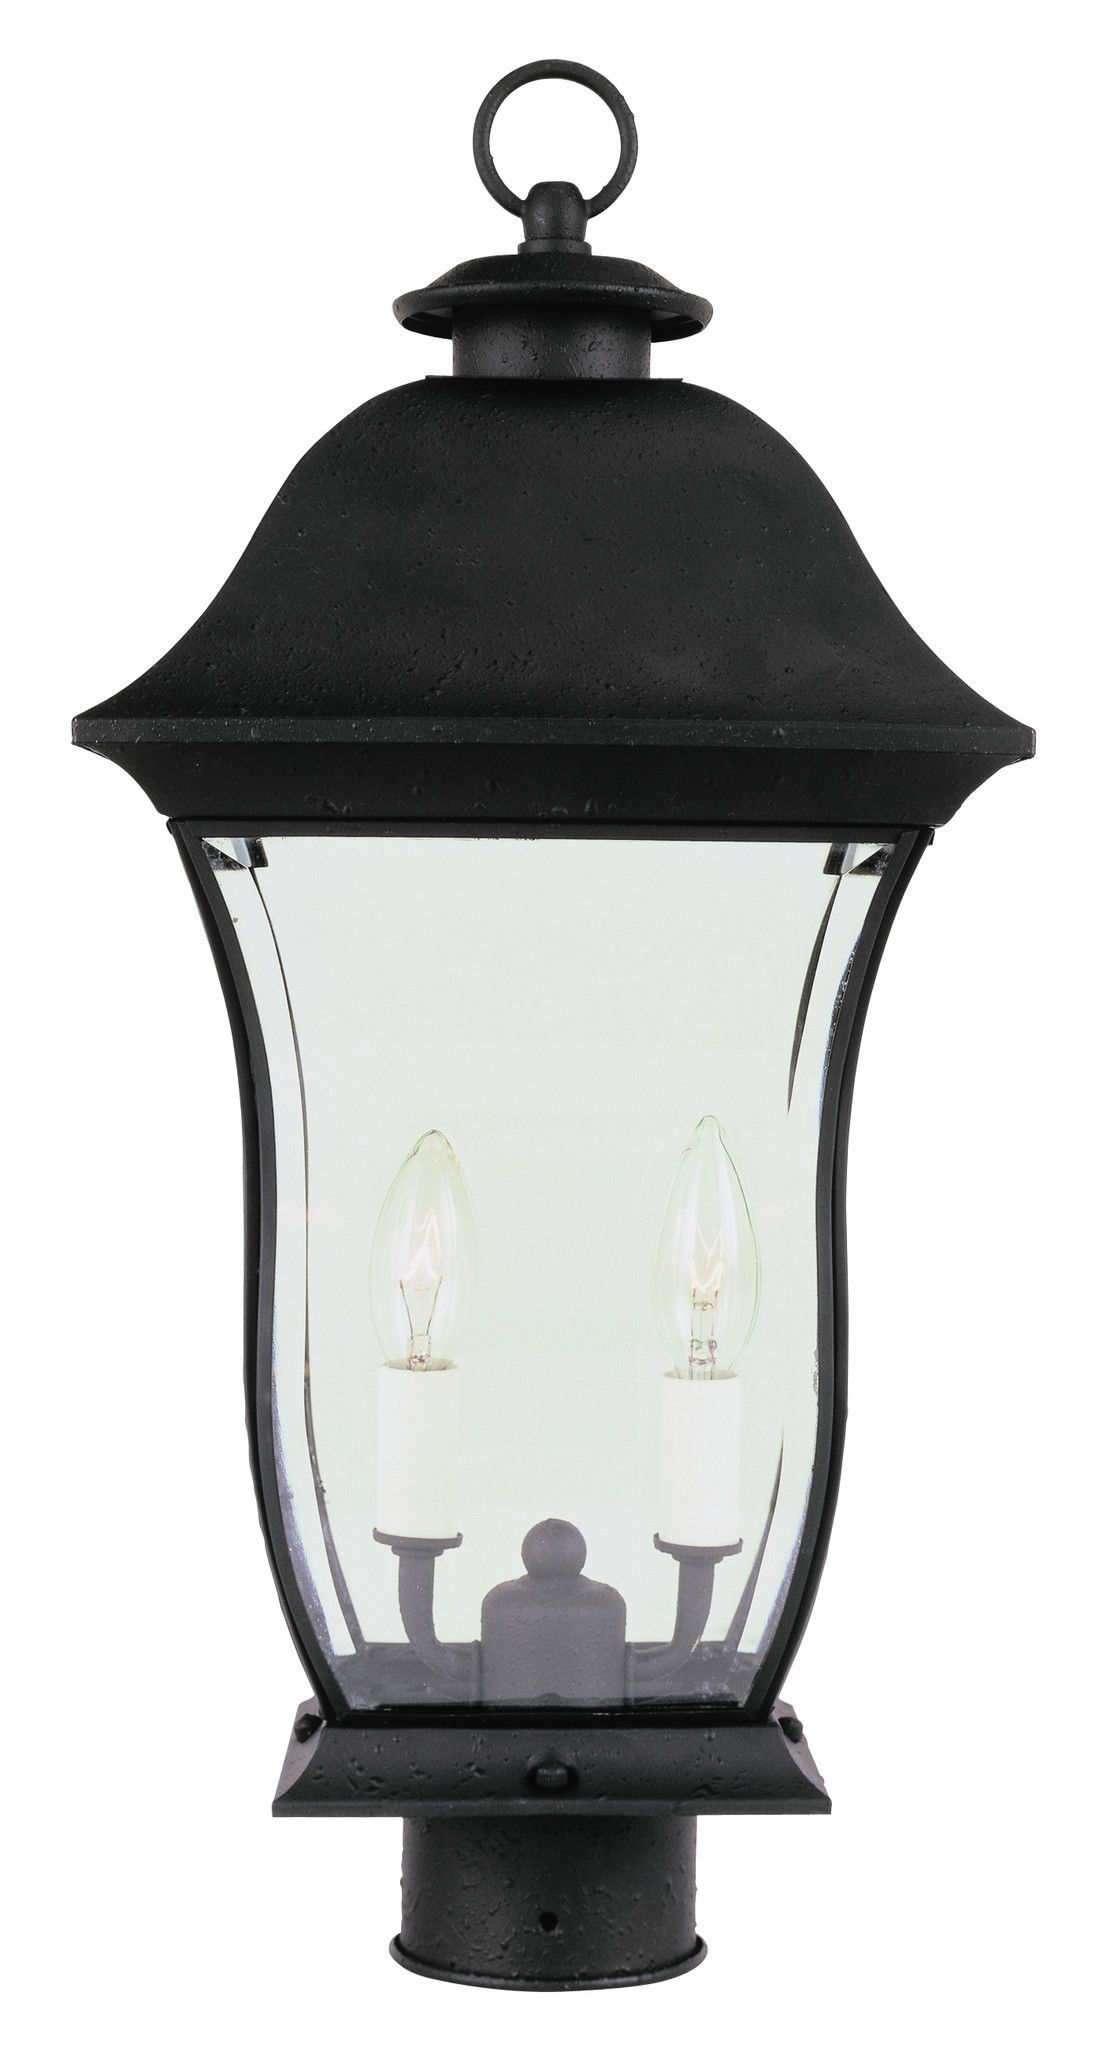 Trans Globe Lighting 4973 Bk Classic 20 Post Top Light